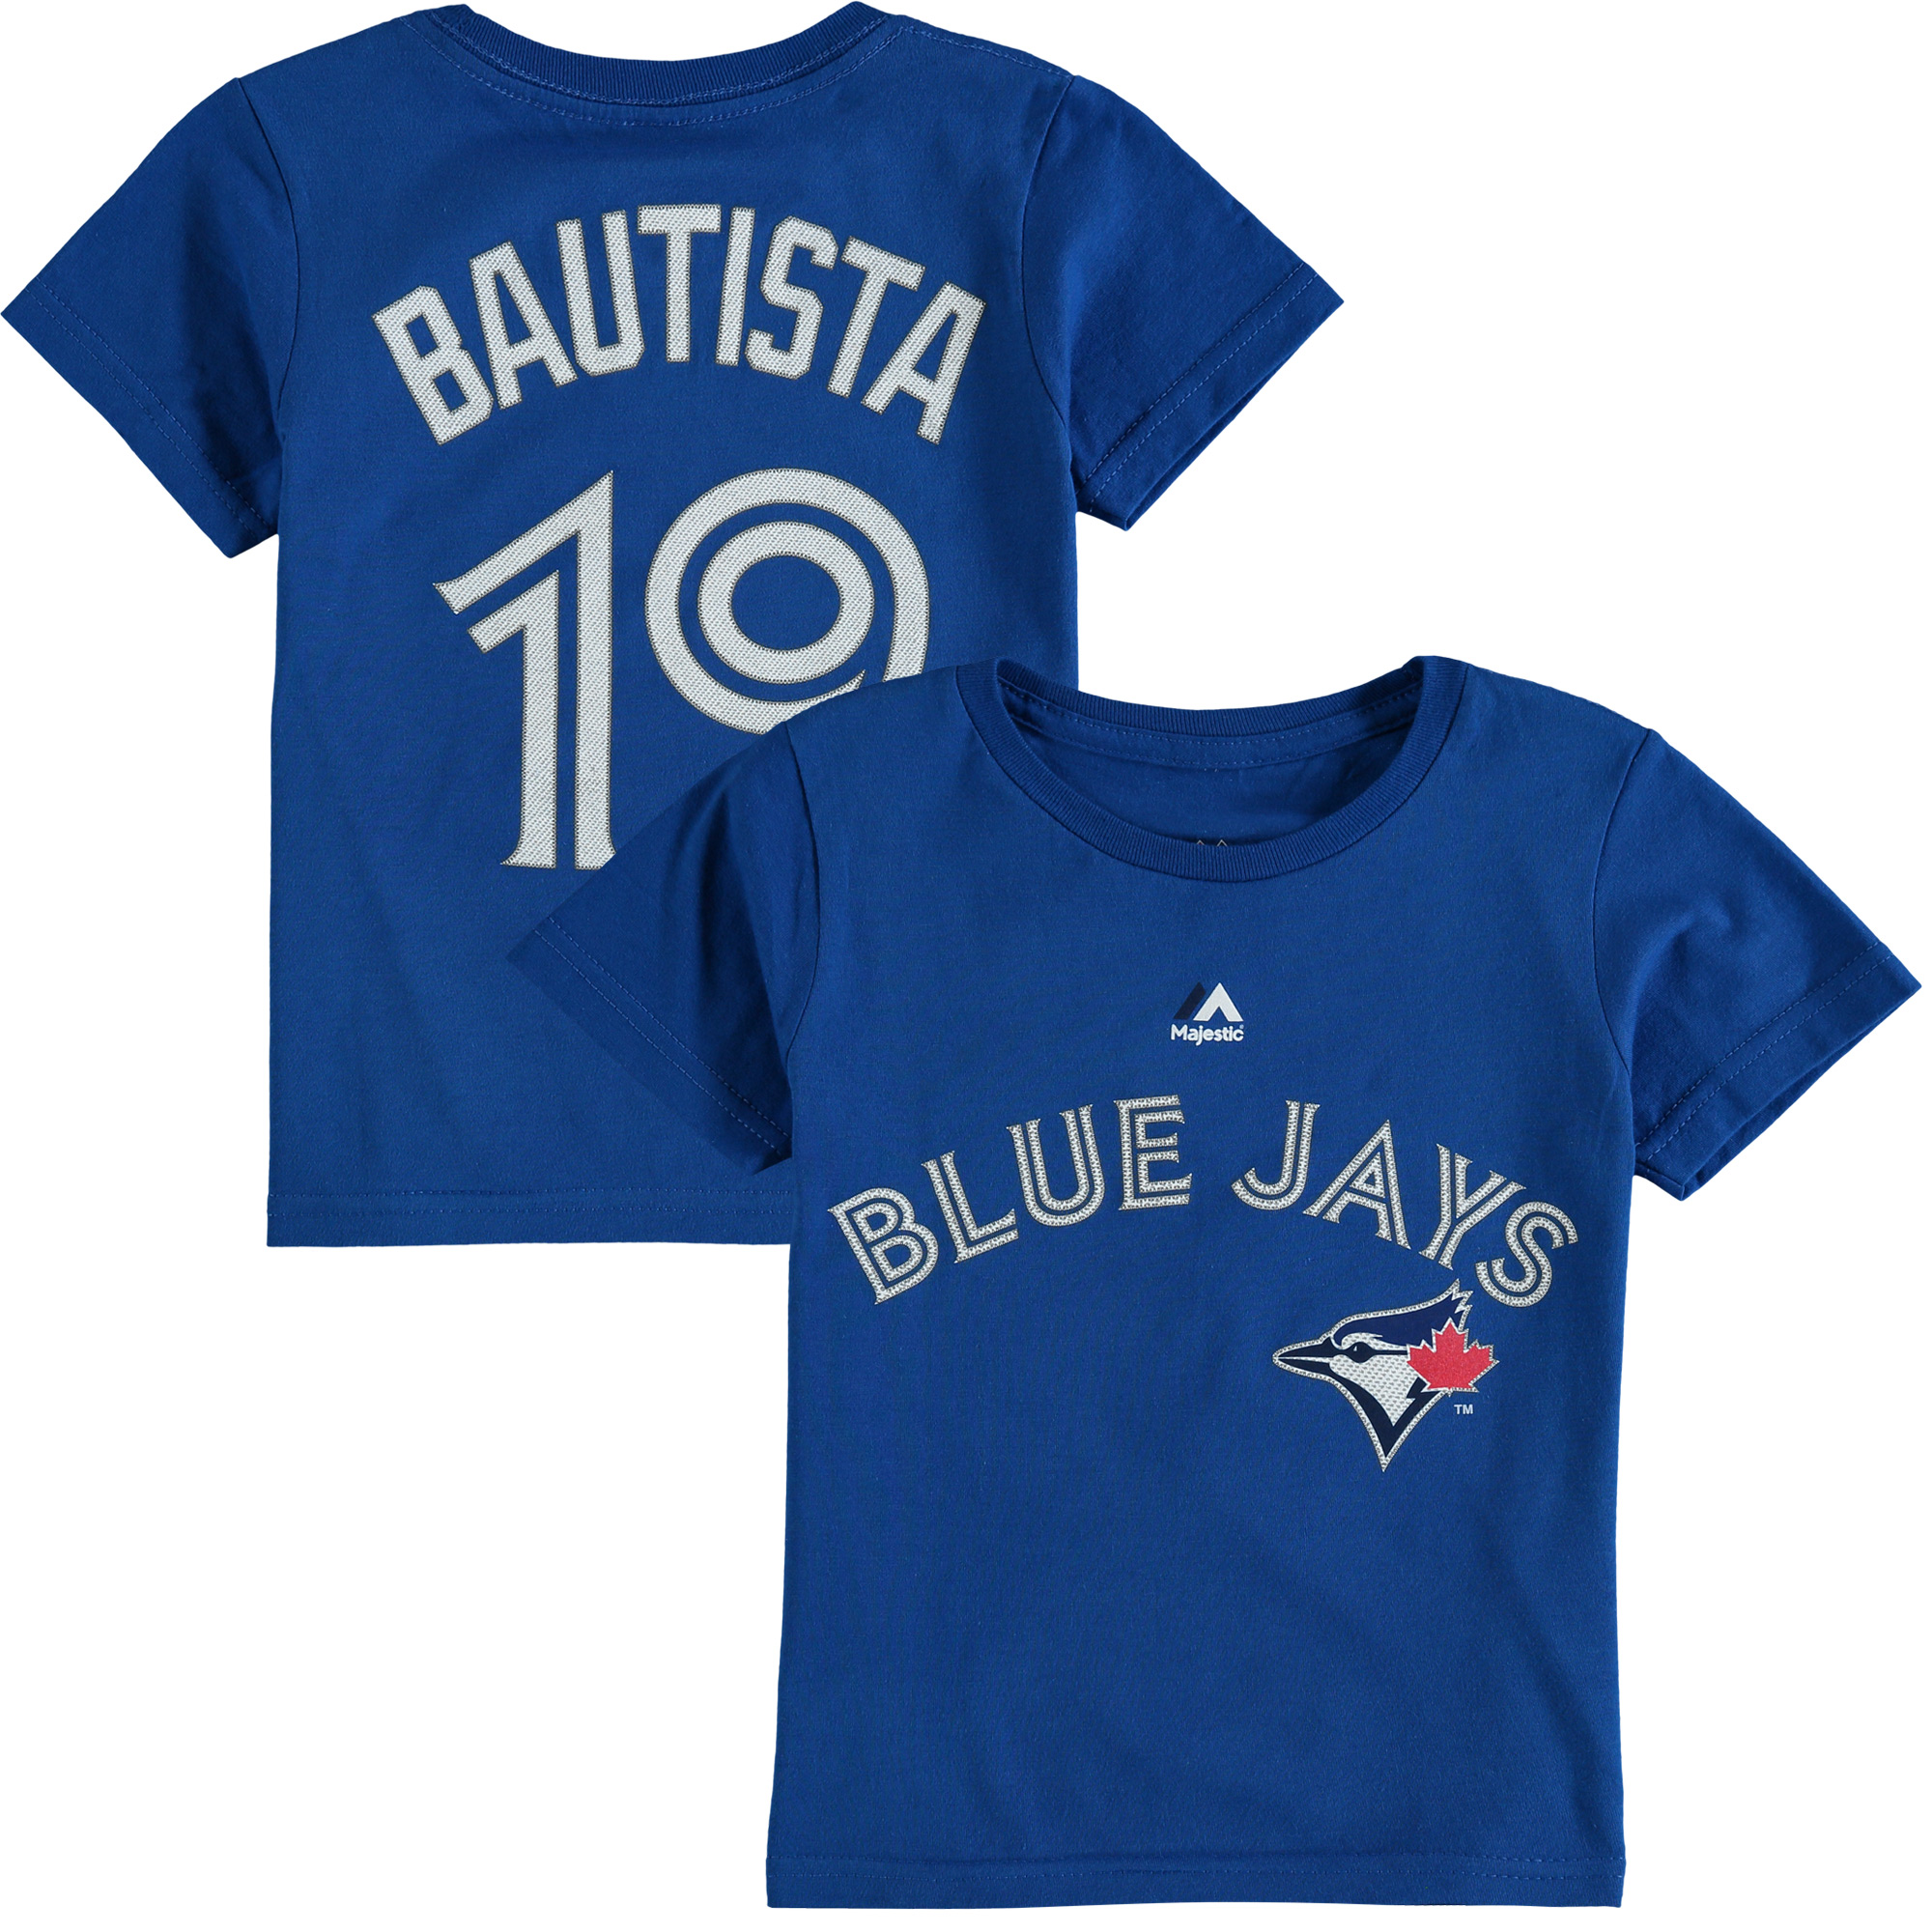 Jose Bautista Toronto Blue Jays Majestic Toddler Player Name & Number T-Shirt - Royal